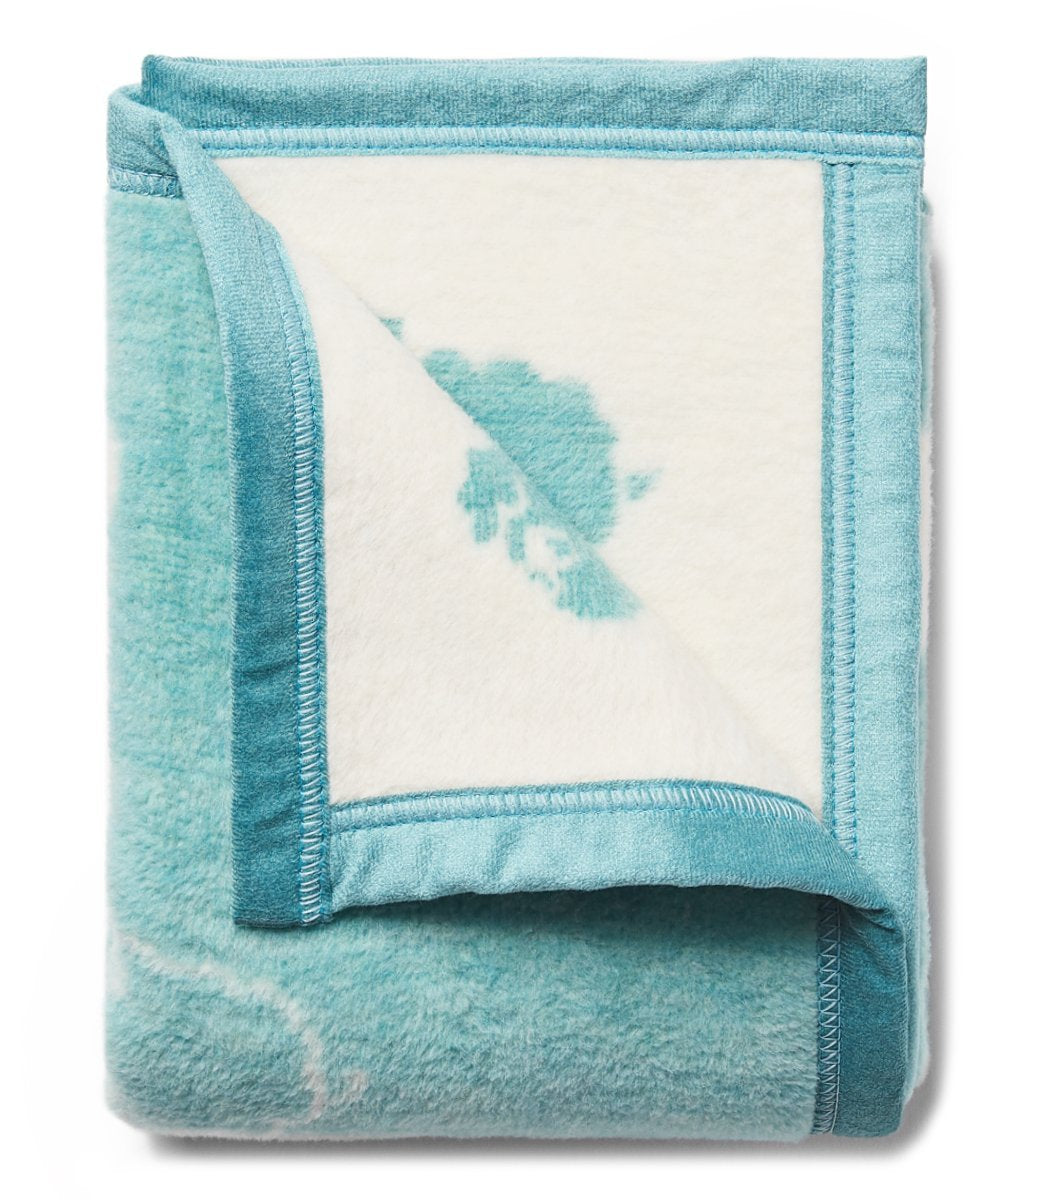 Counting Sheep Seafoam Mini Blanket